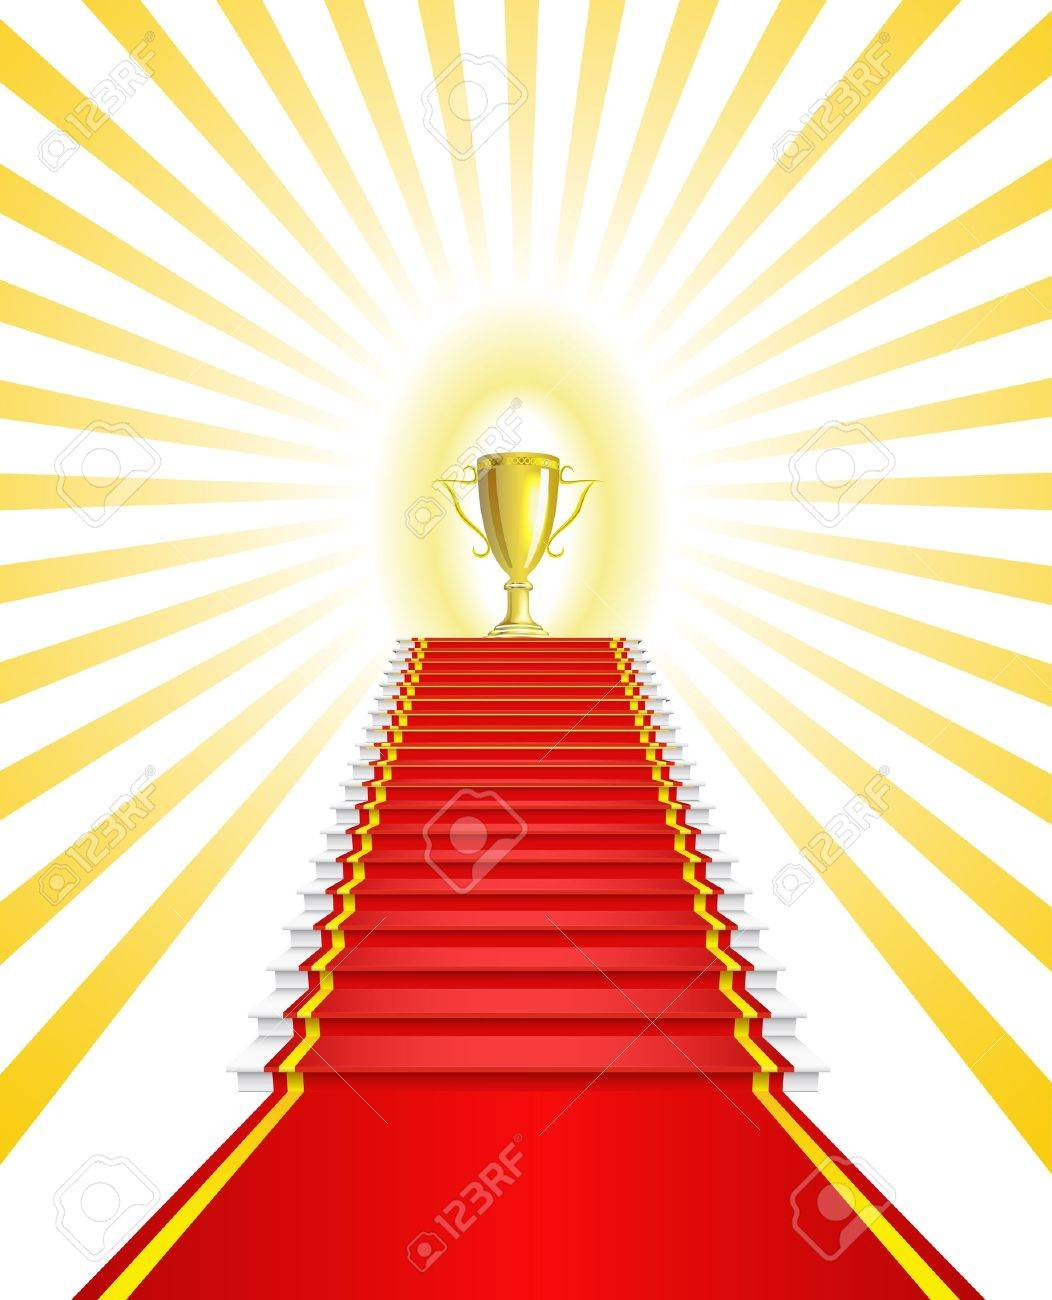 Gold Cup on the red carpet is shown in the picture Stock Vector - 12480969